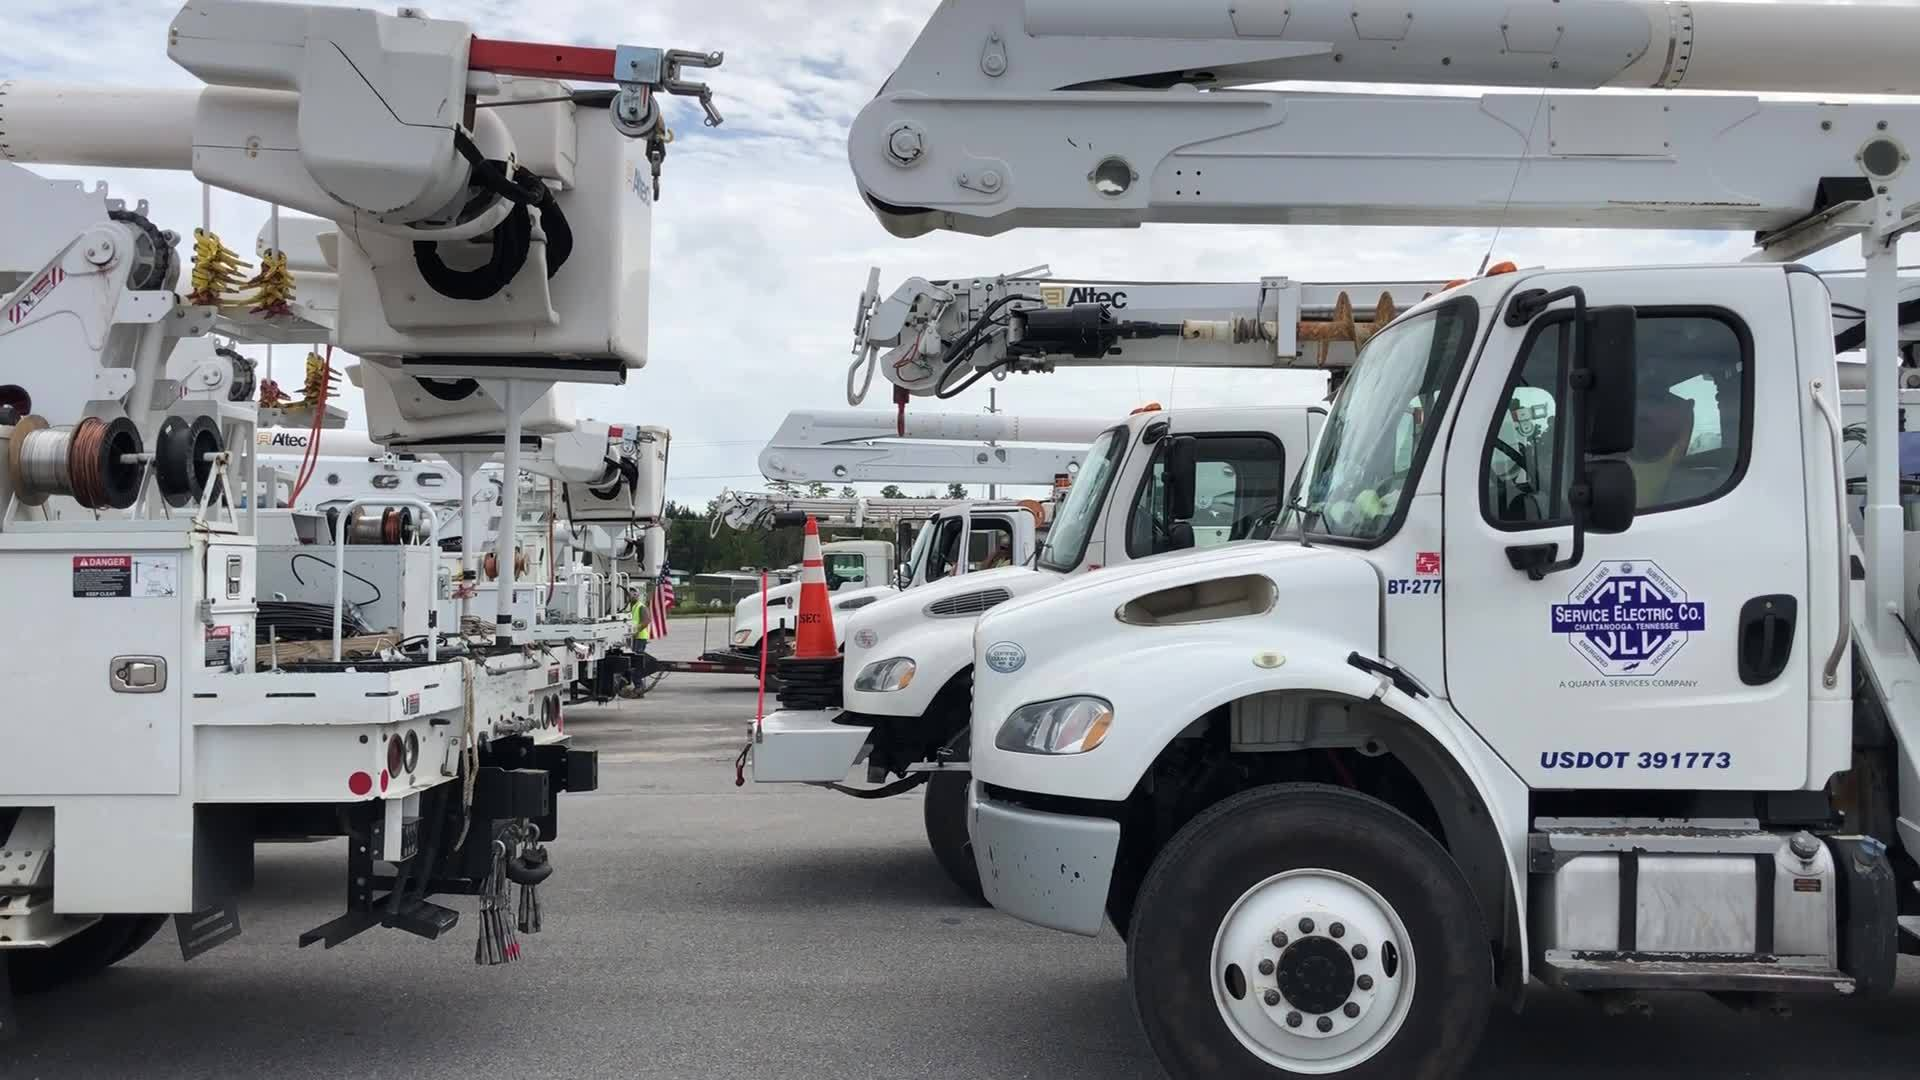 Gulf Power crews on standby to help after Michael